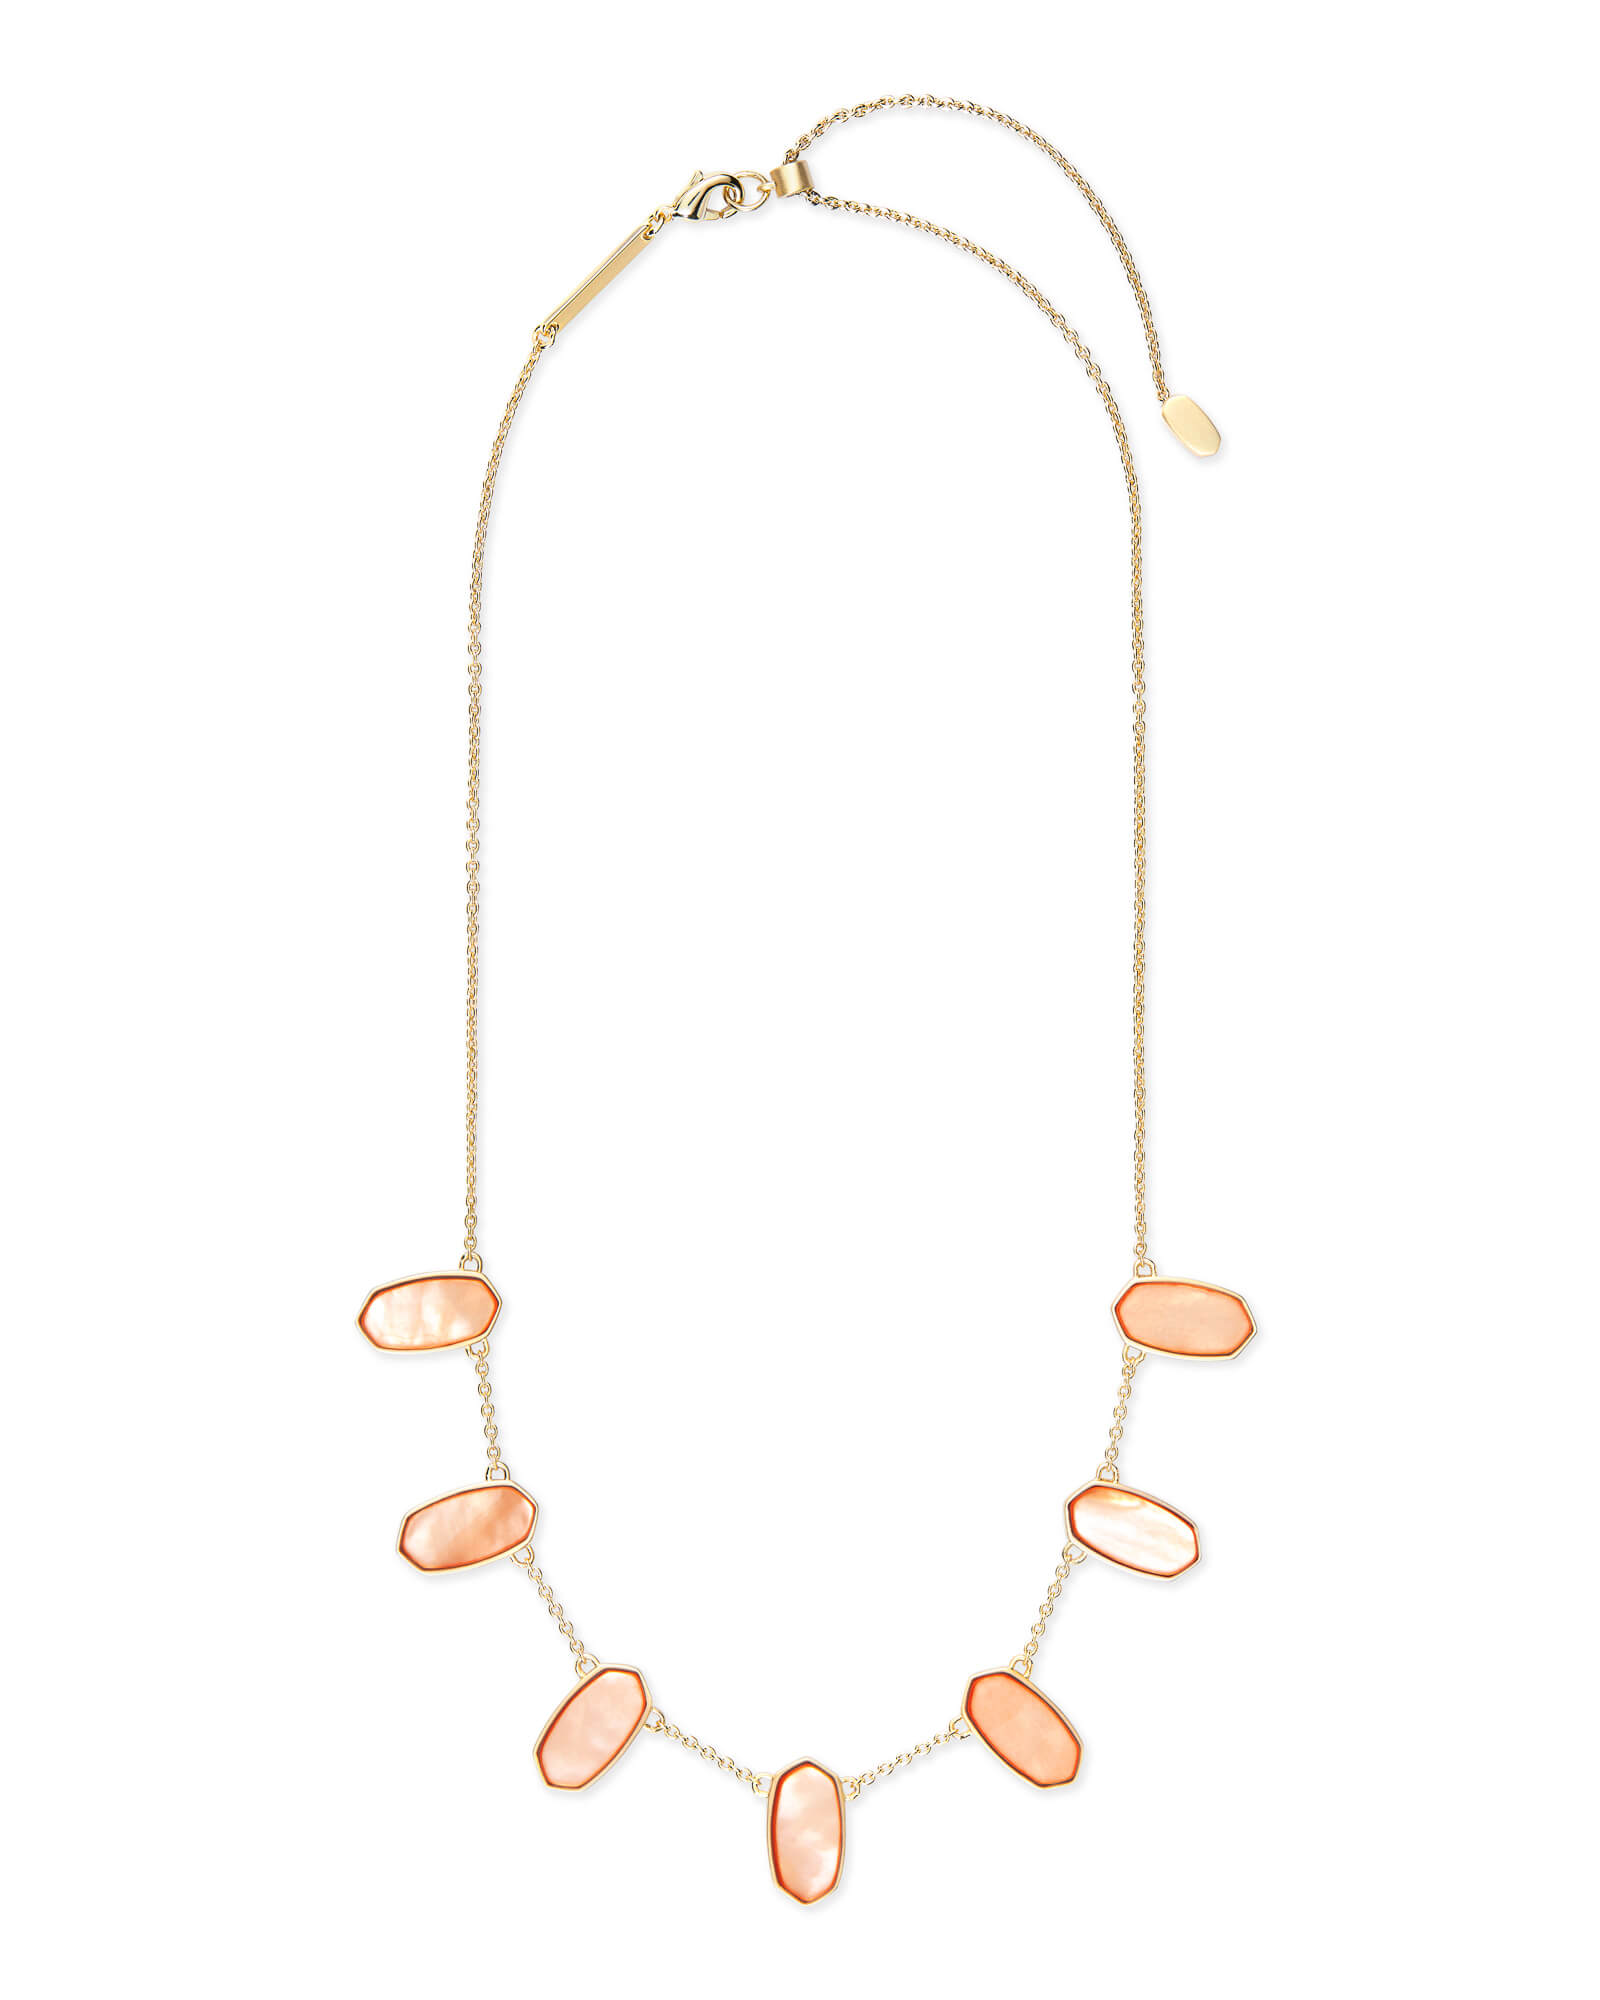 Meadow Gold Statement Necklace in Peach Pearl